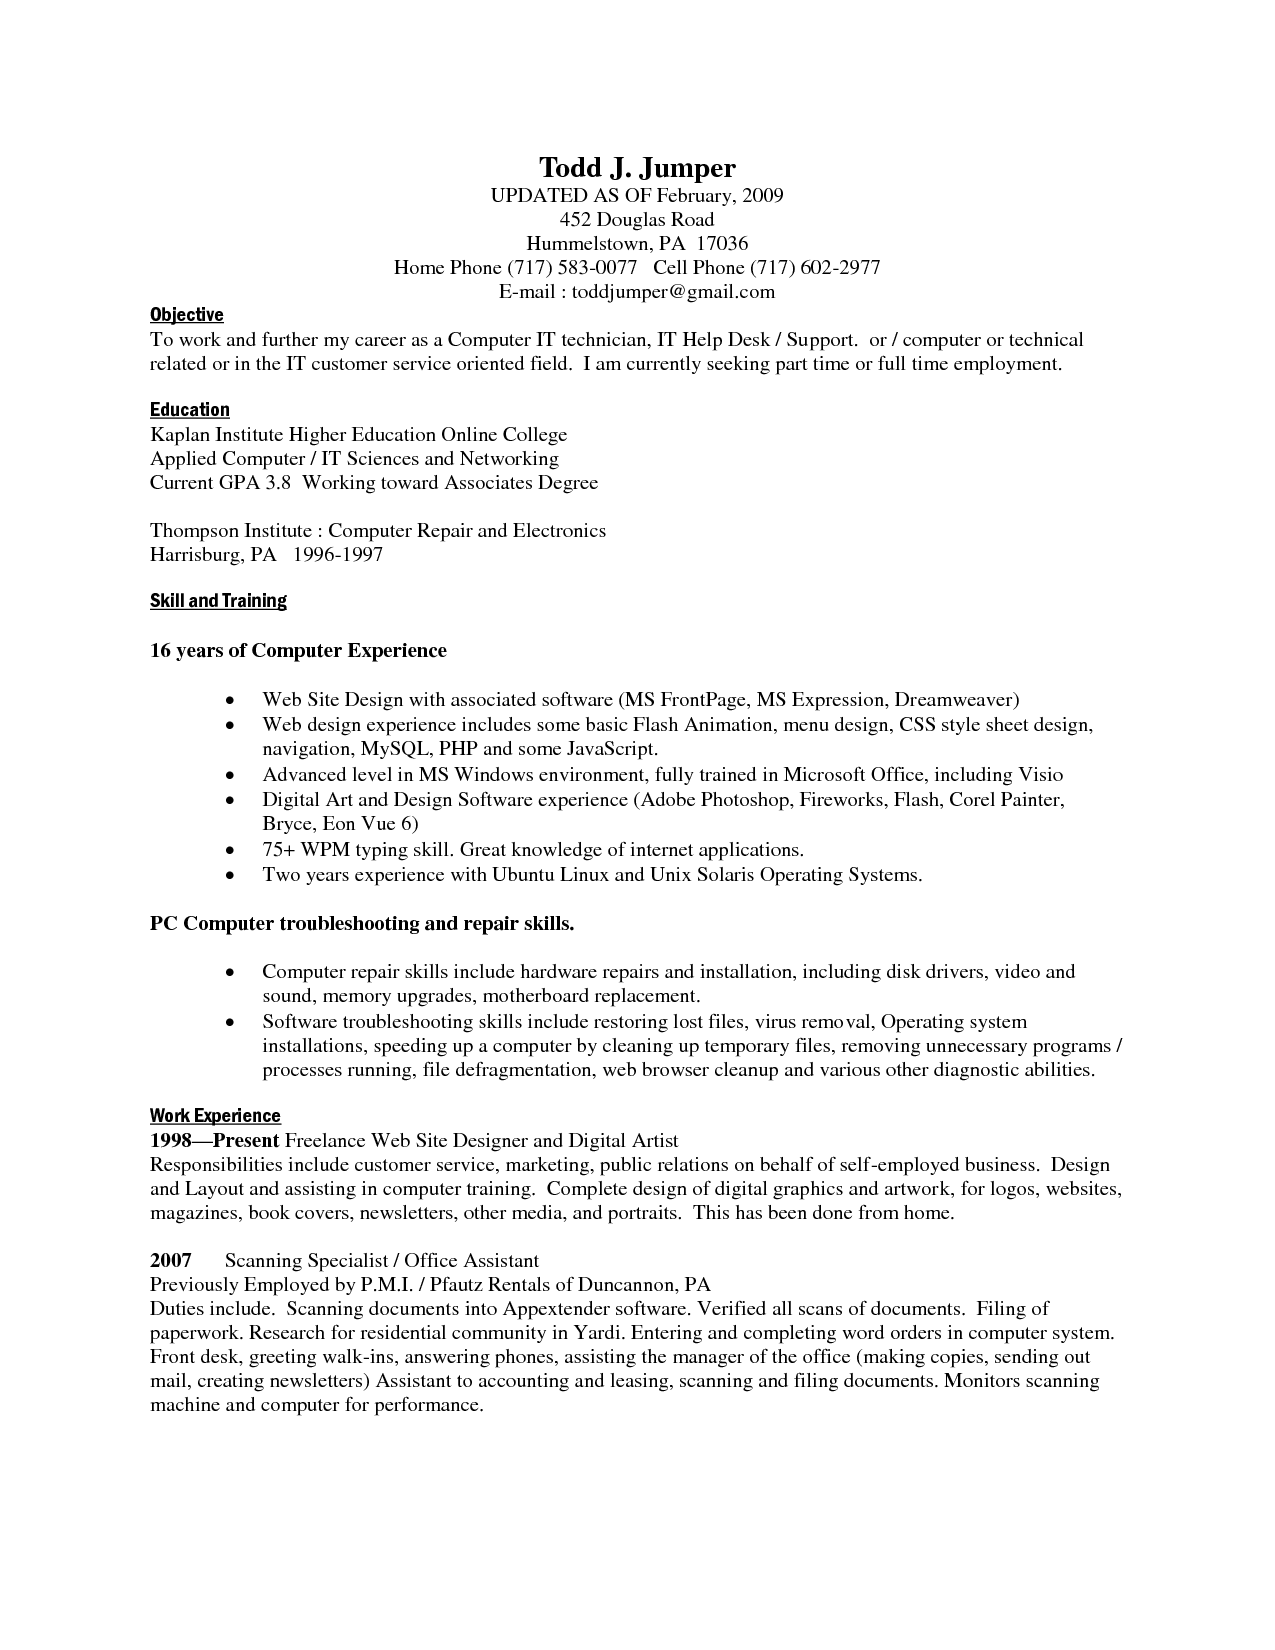 Online Writing Lab - resume objective examples computer ...